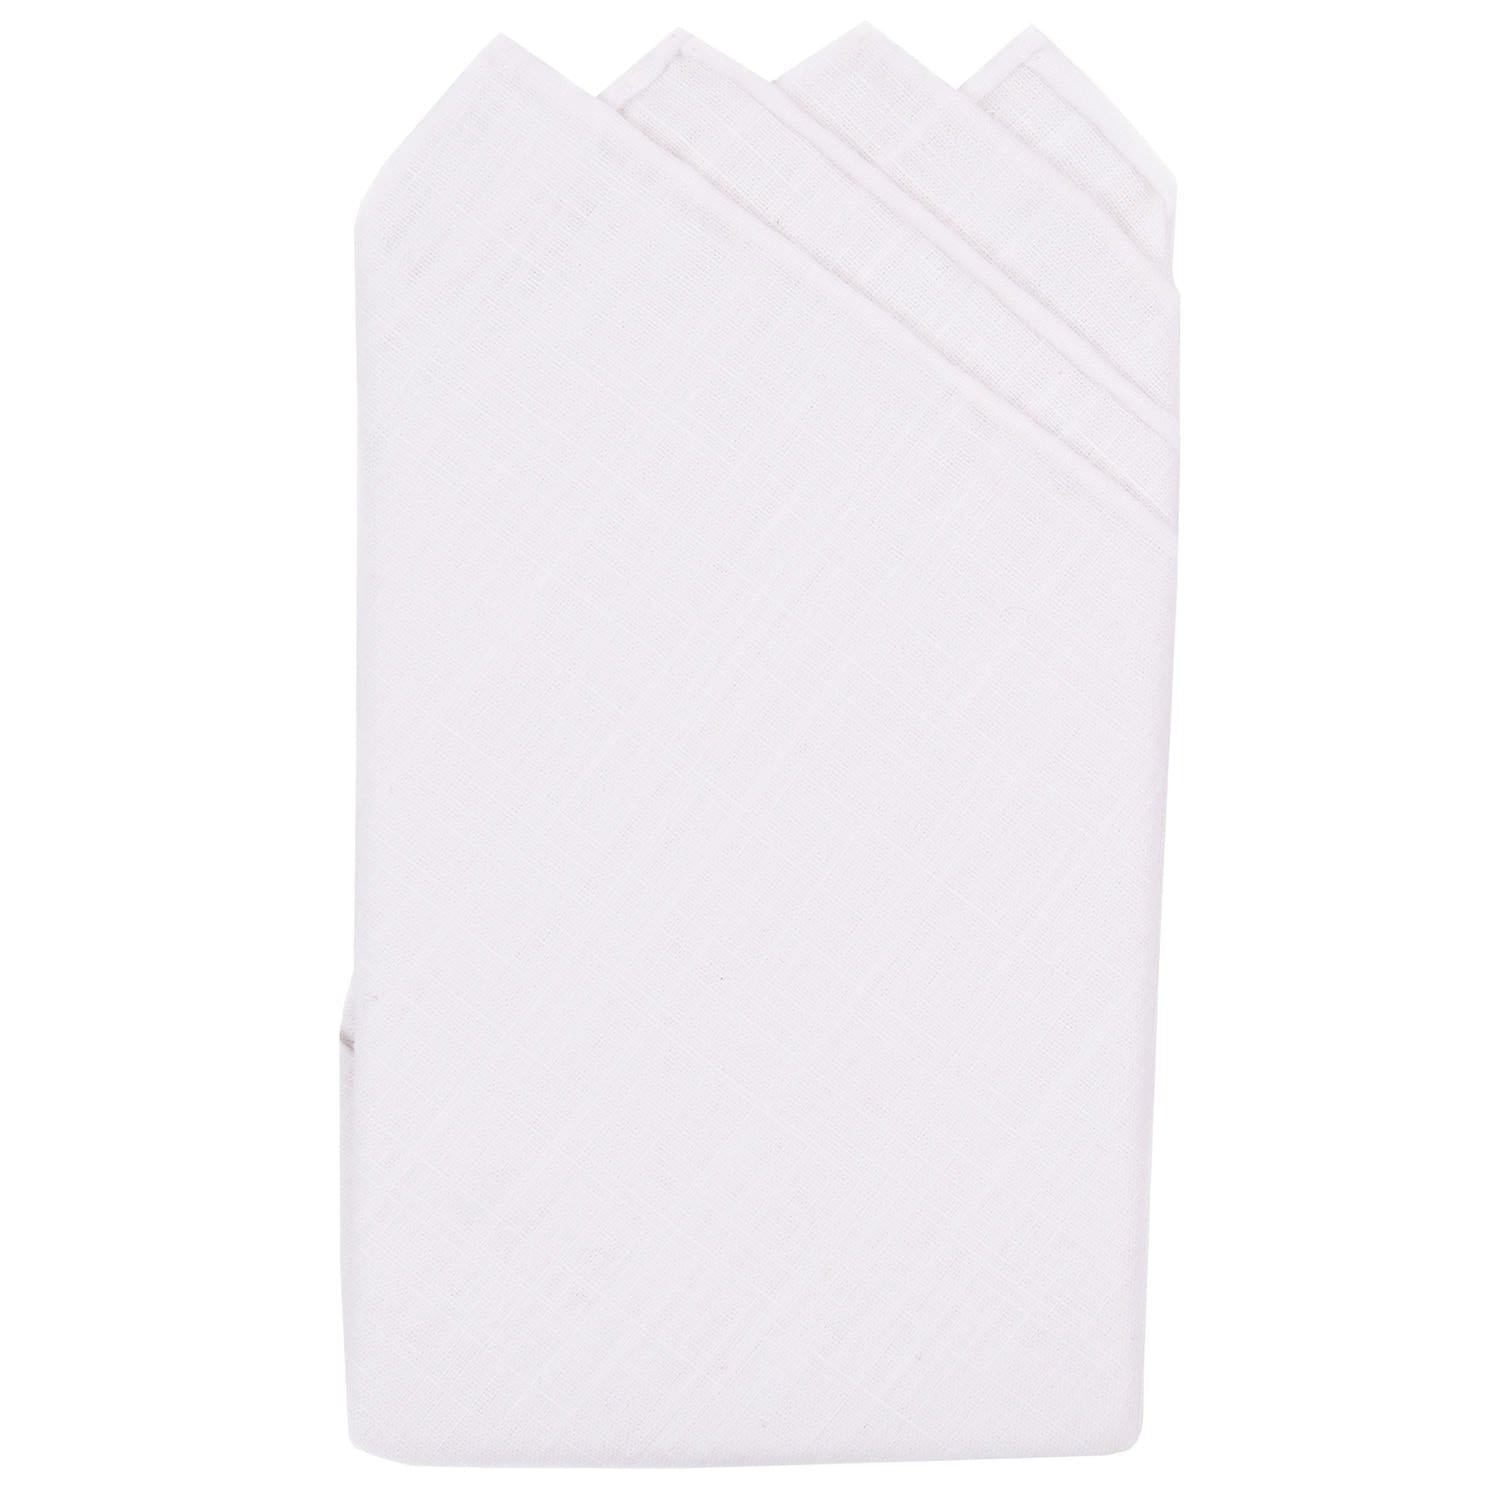 White Linen Pre-Folded Linen Pocket Square - Haspel Clothing